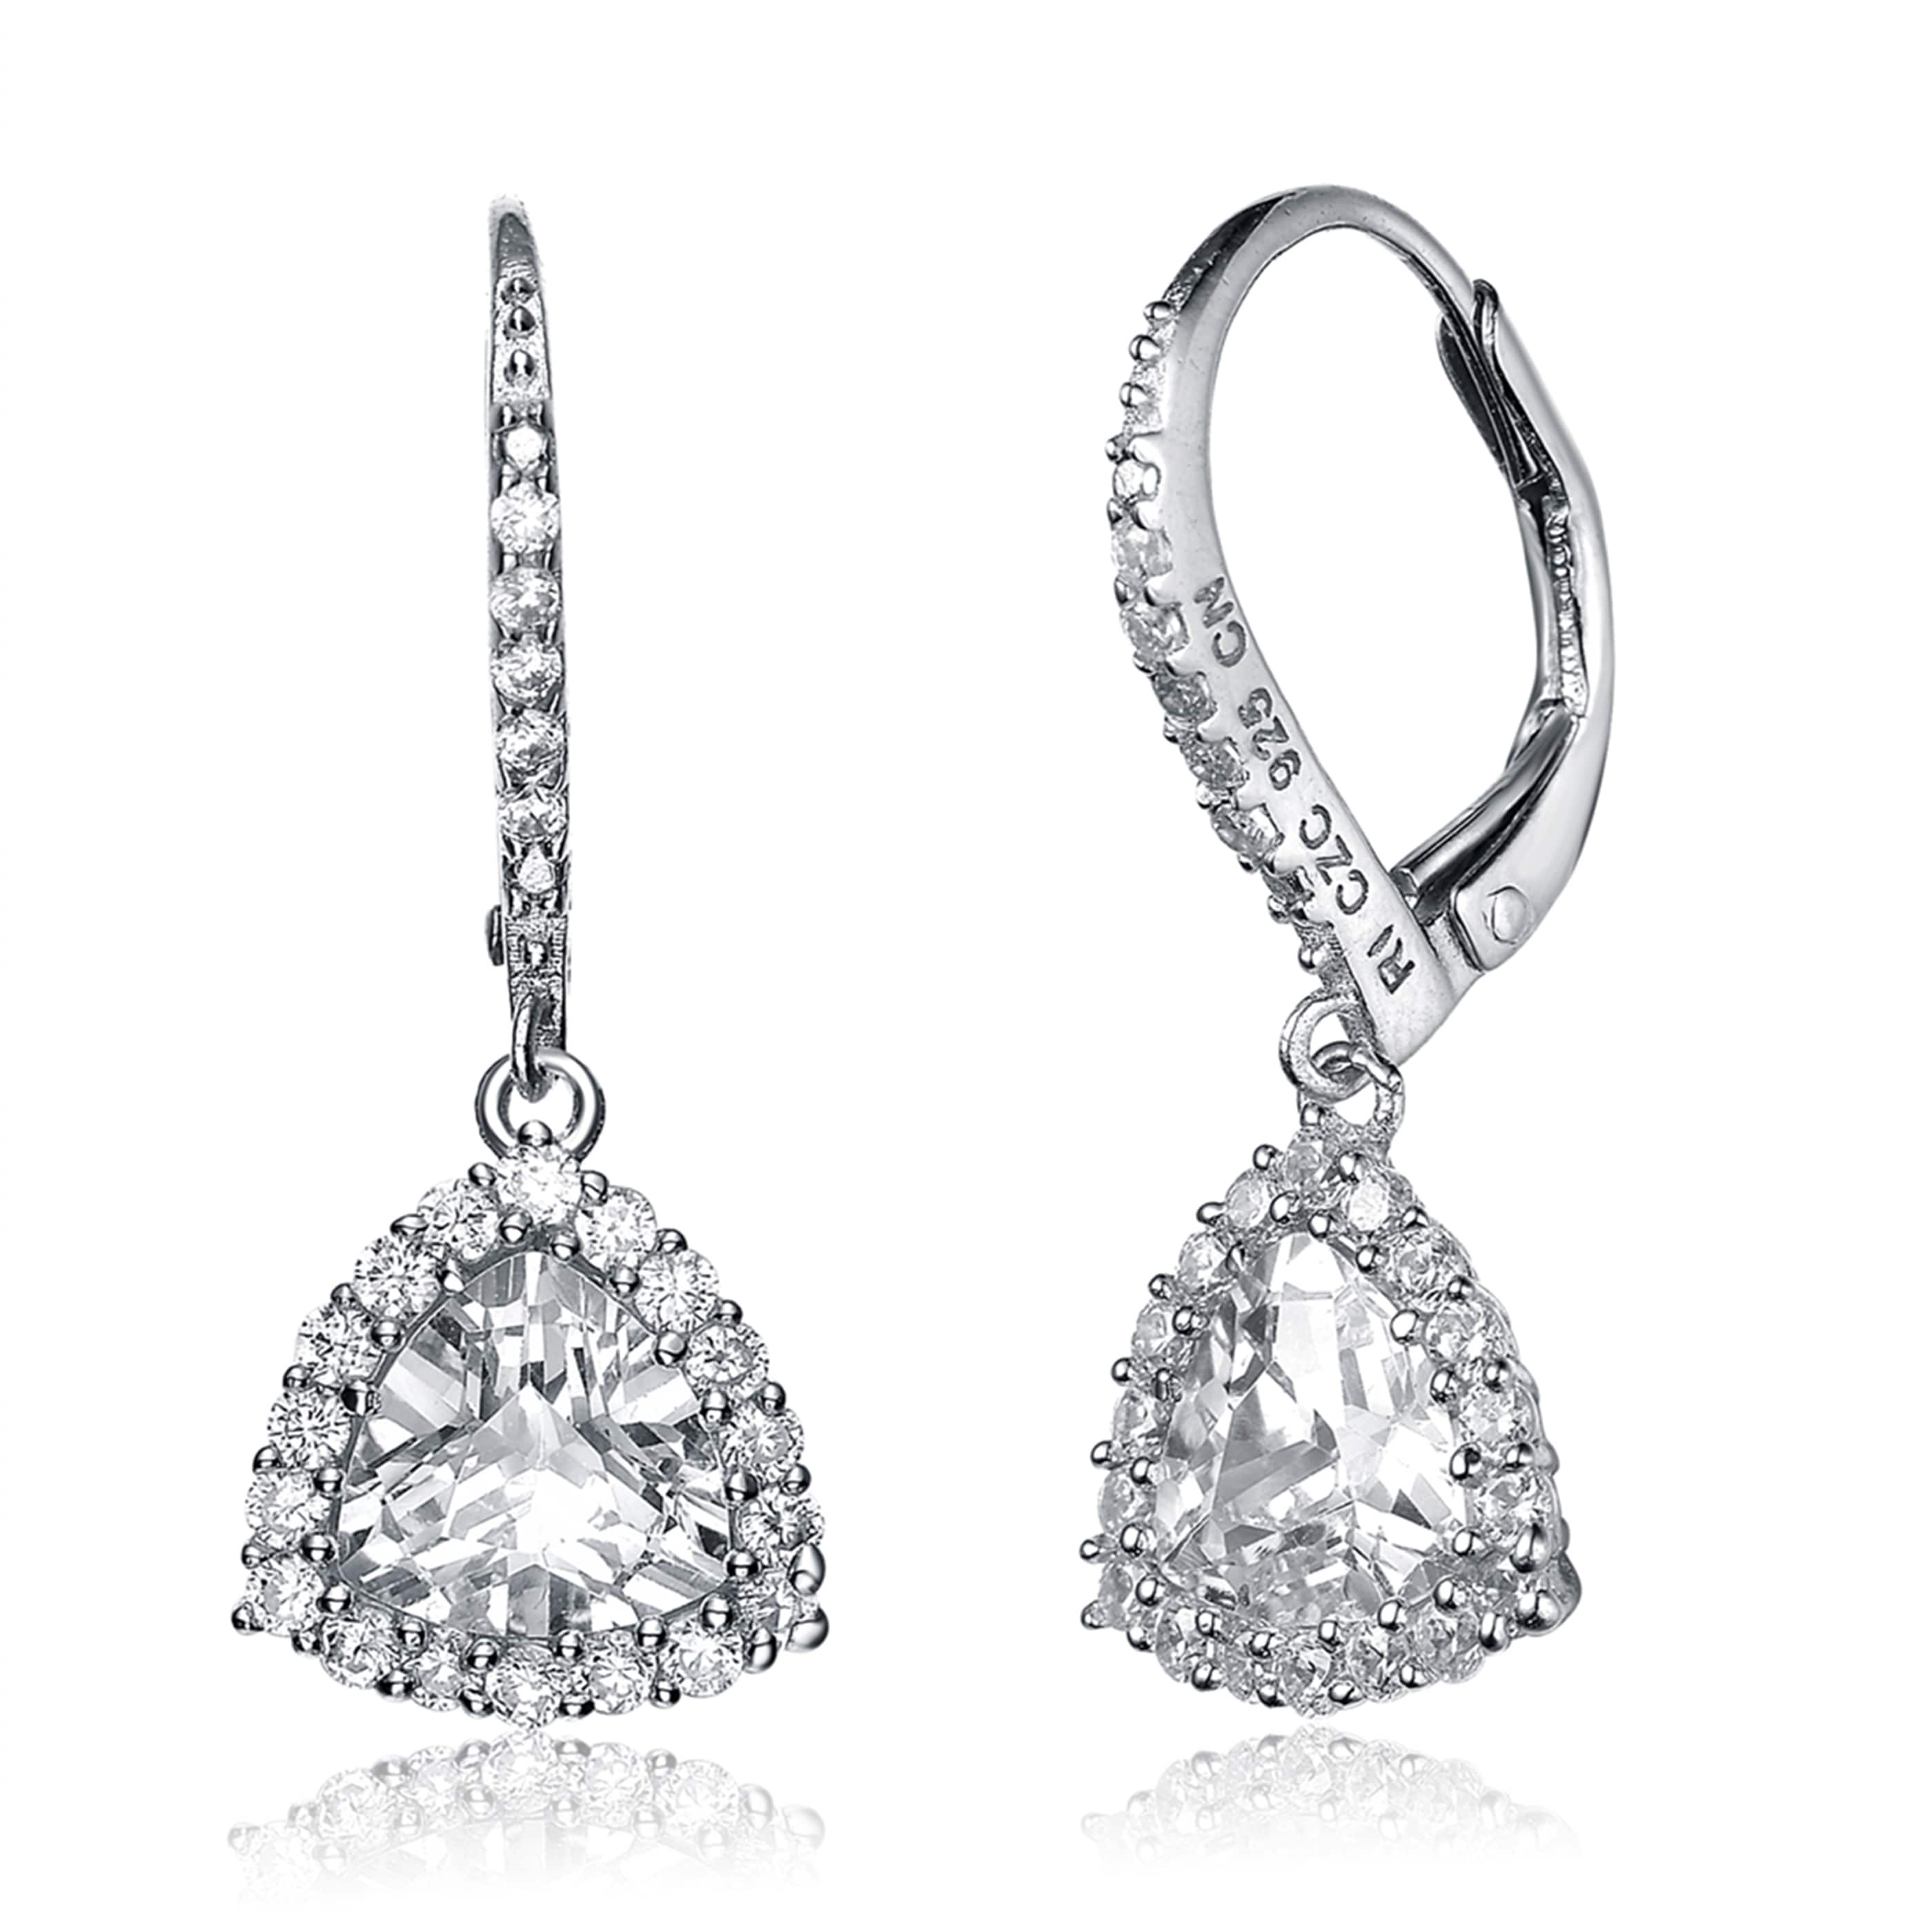 Collette Z Sterling Silver Cubic Zirconia Drop Earrings Free Shipping On Orders Over 45 17404127